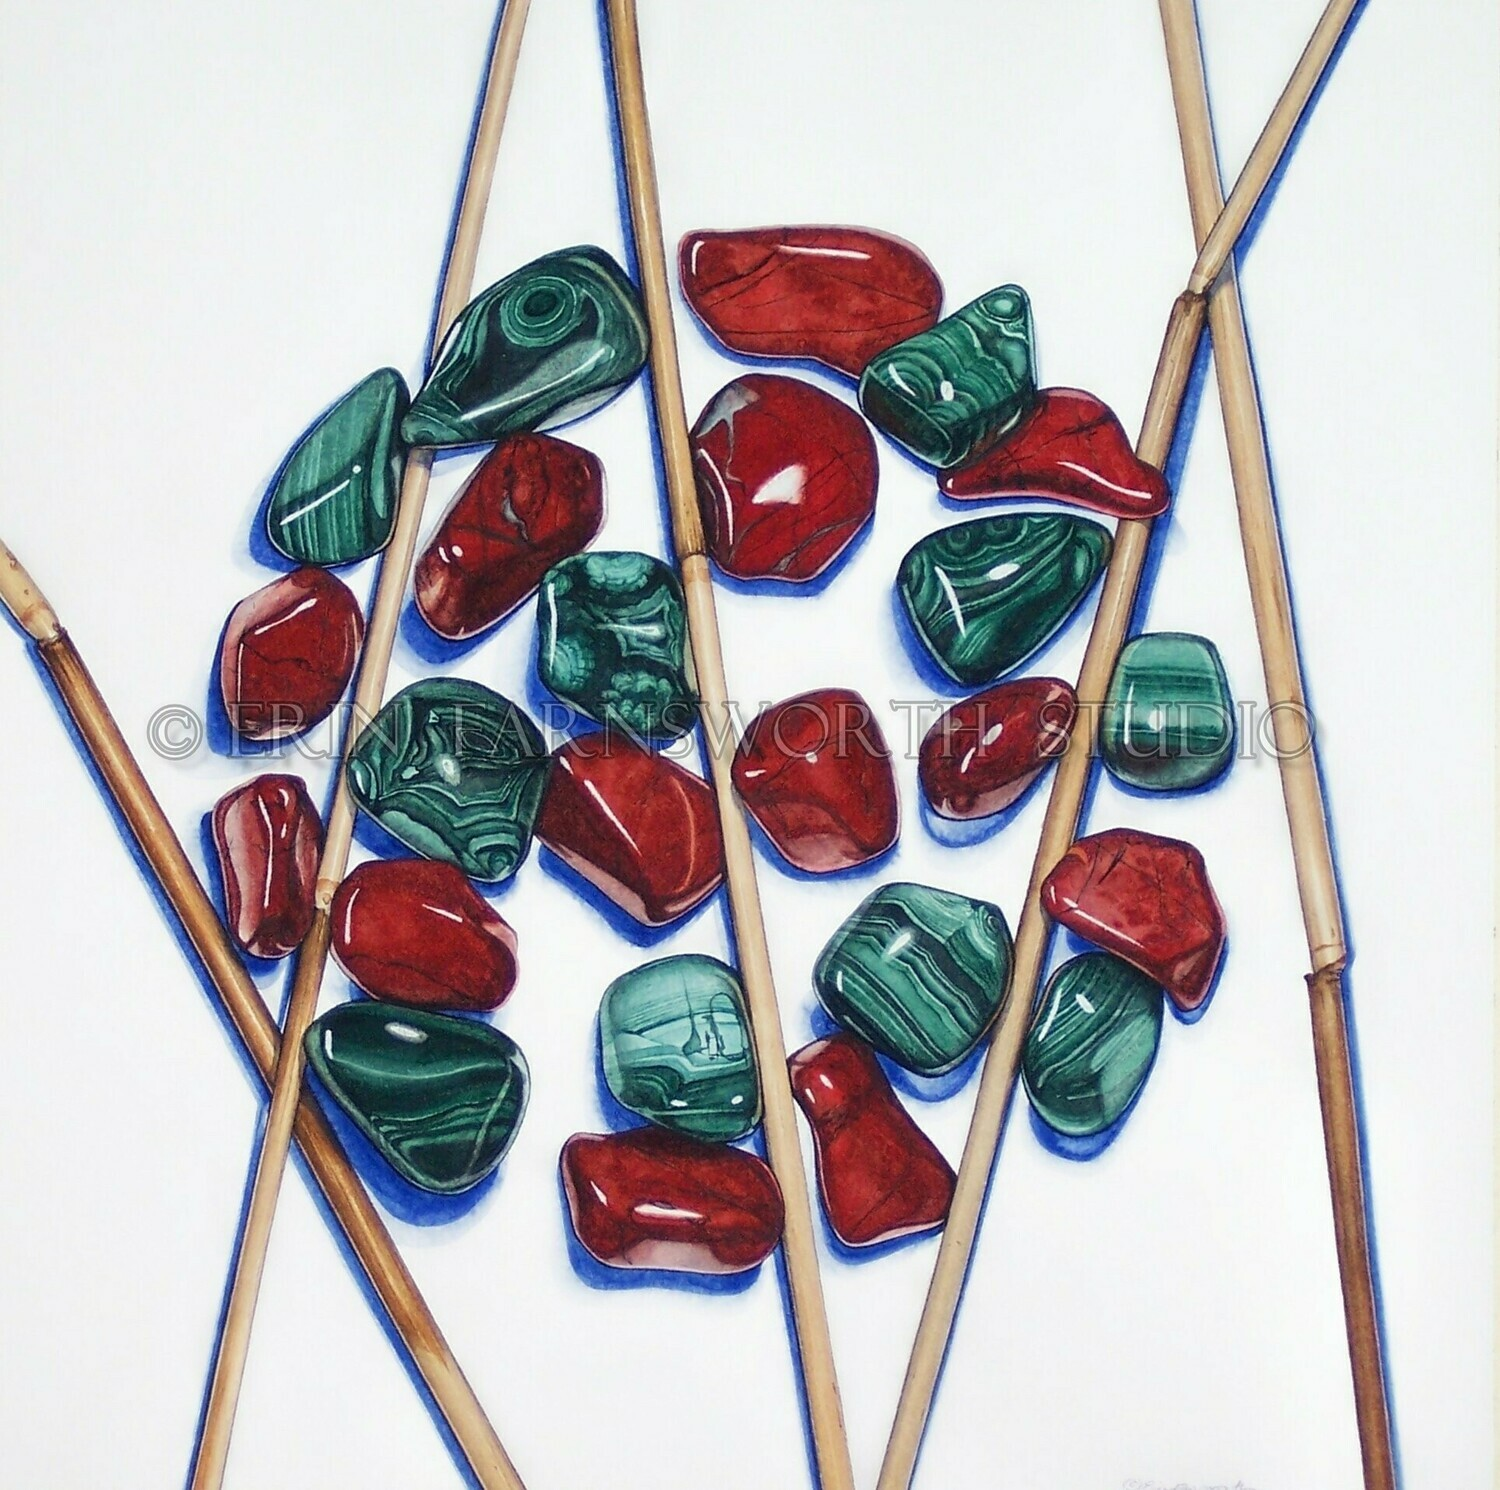 """Malachite, Reeds and Red Jasper"" 8.5 x 11 print"